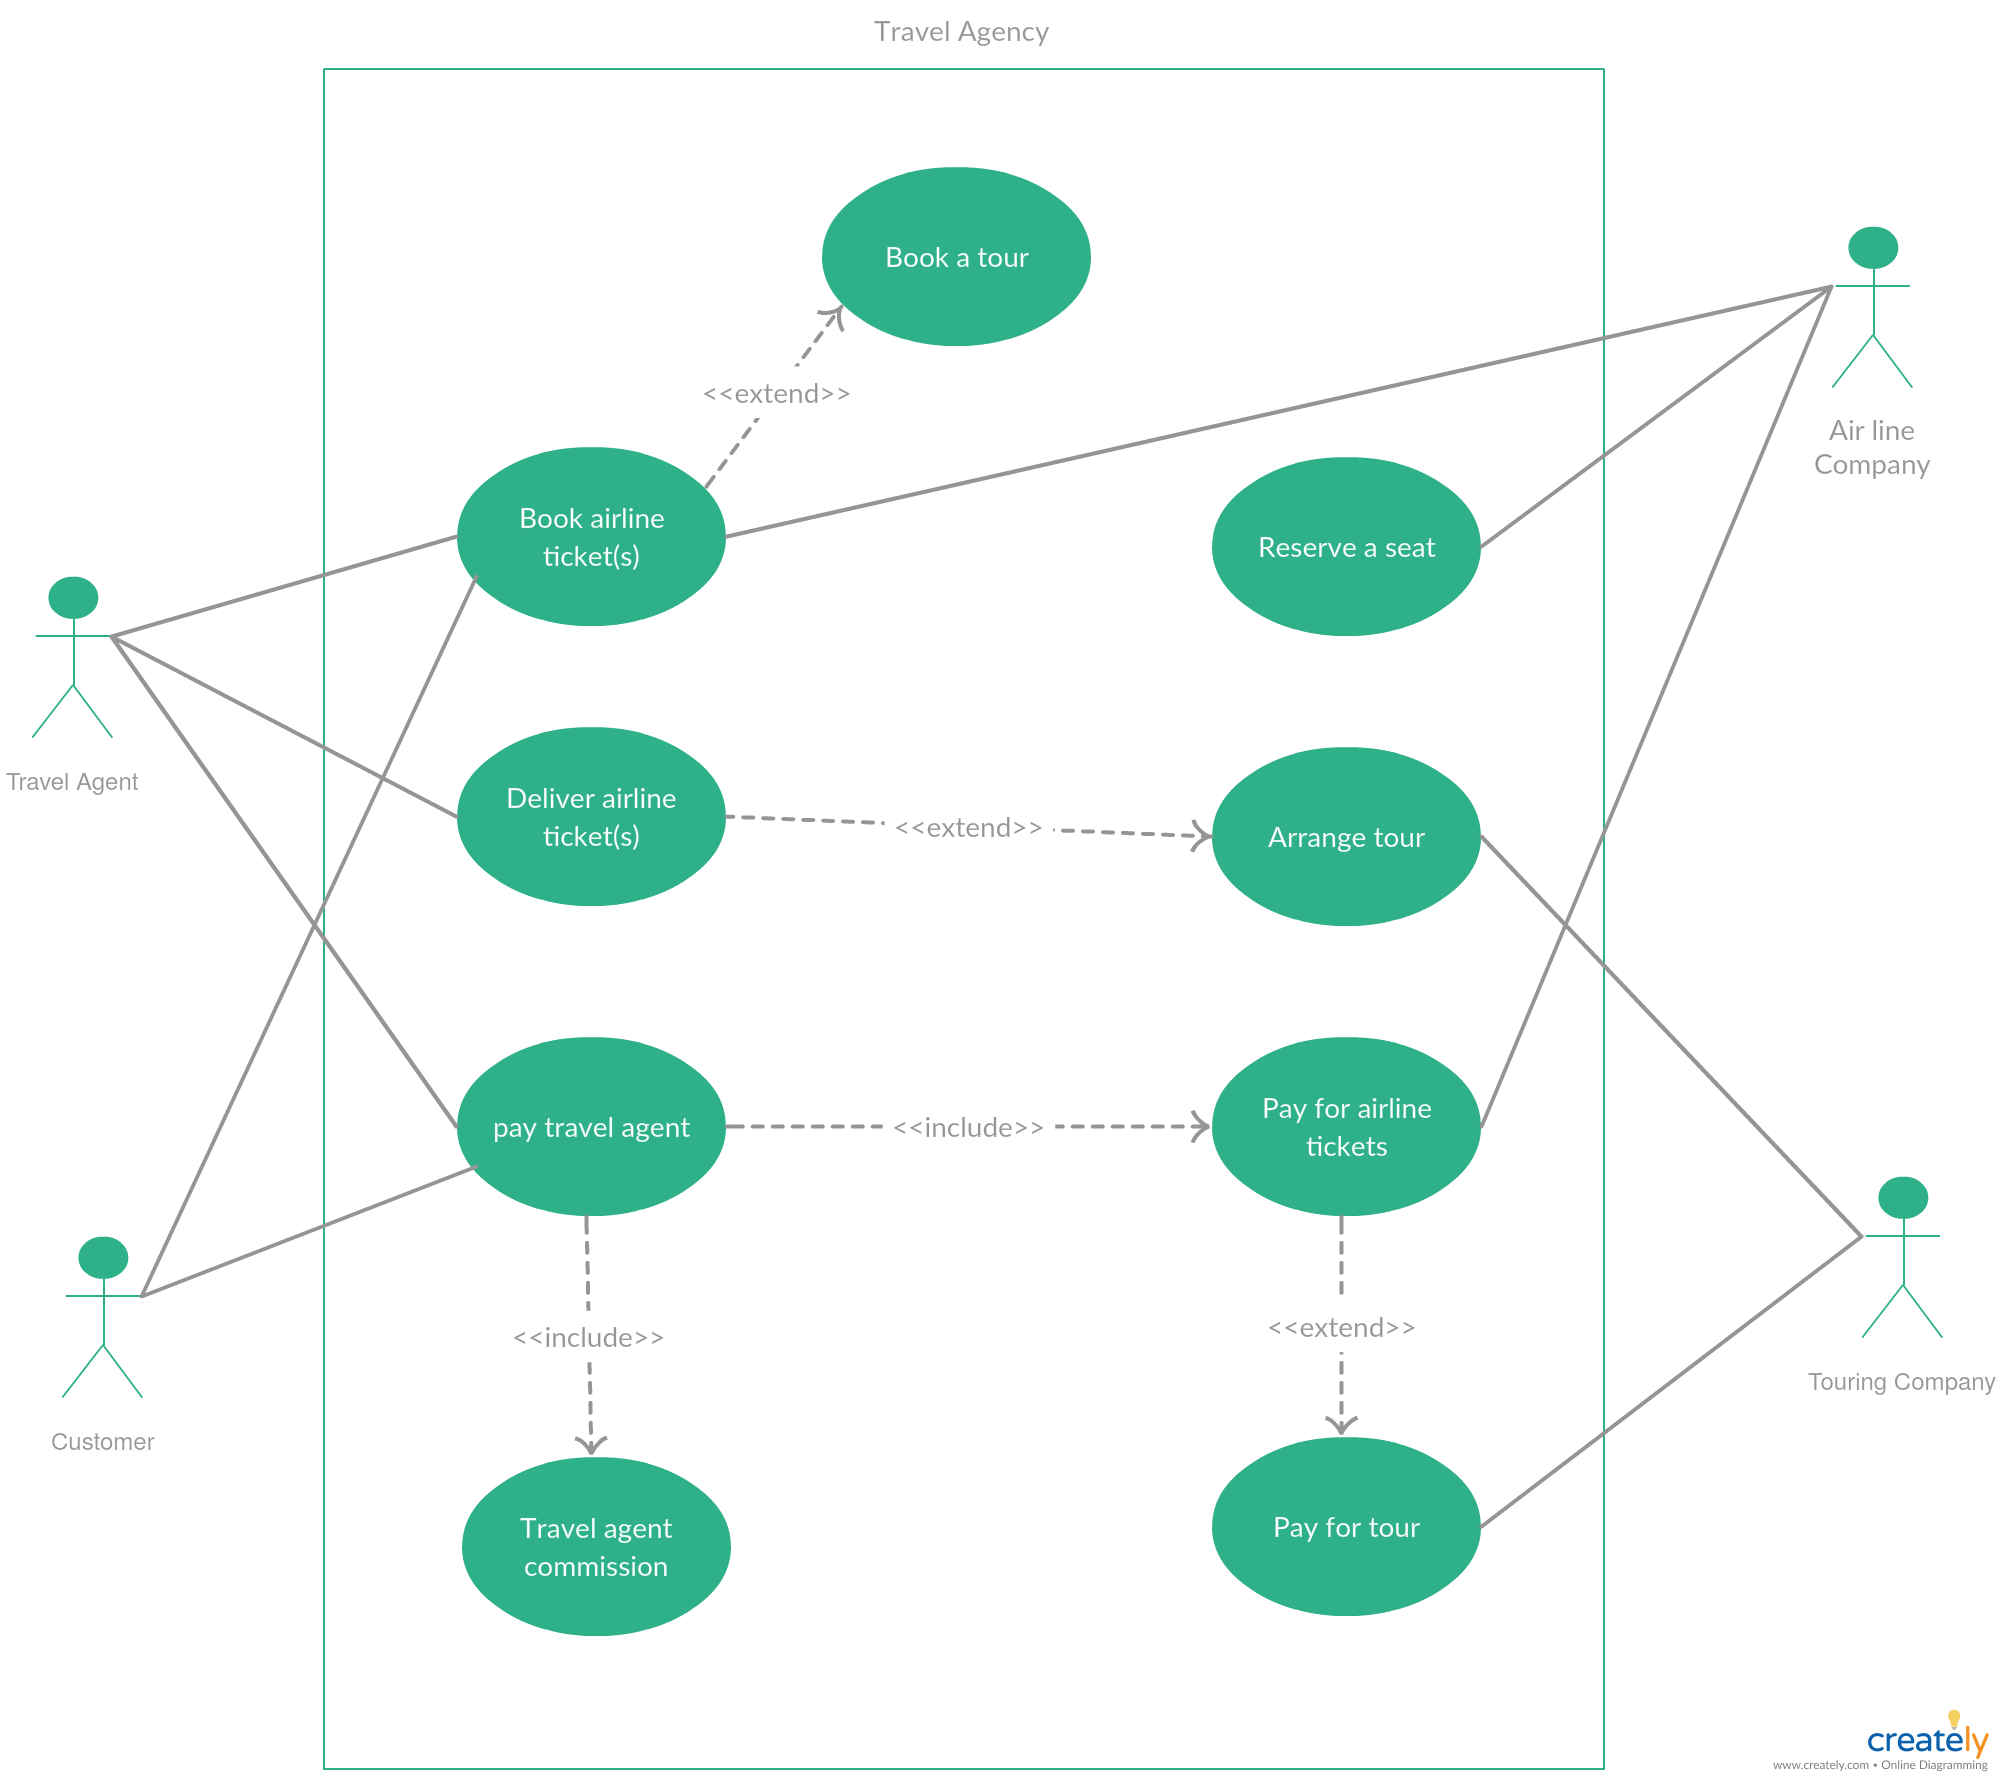 Use Case Diagram Tutorial Guide With Examples Creately Blog Travel Agency Use Case Online Travel Agent